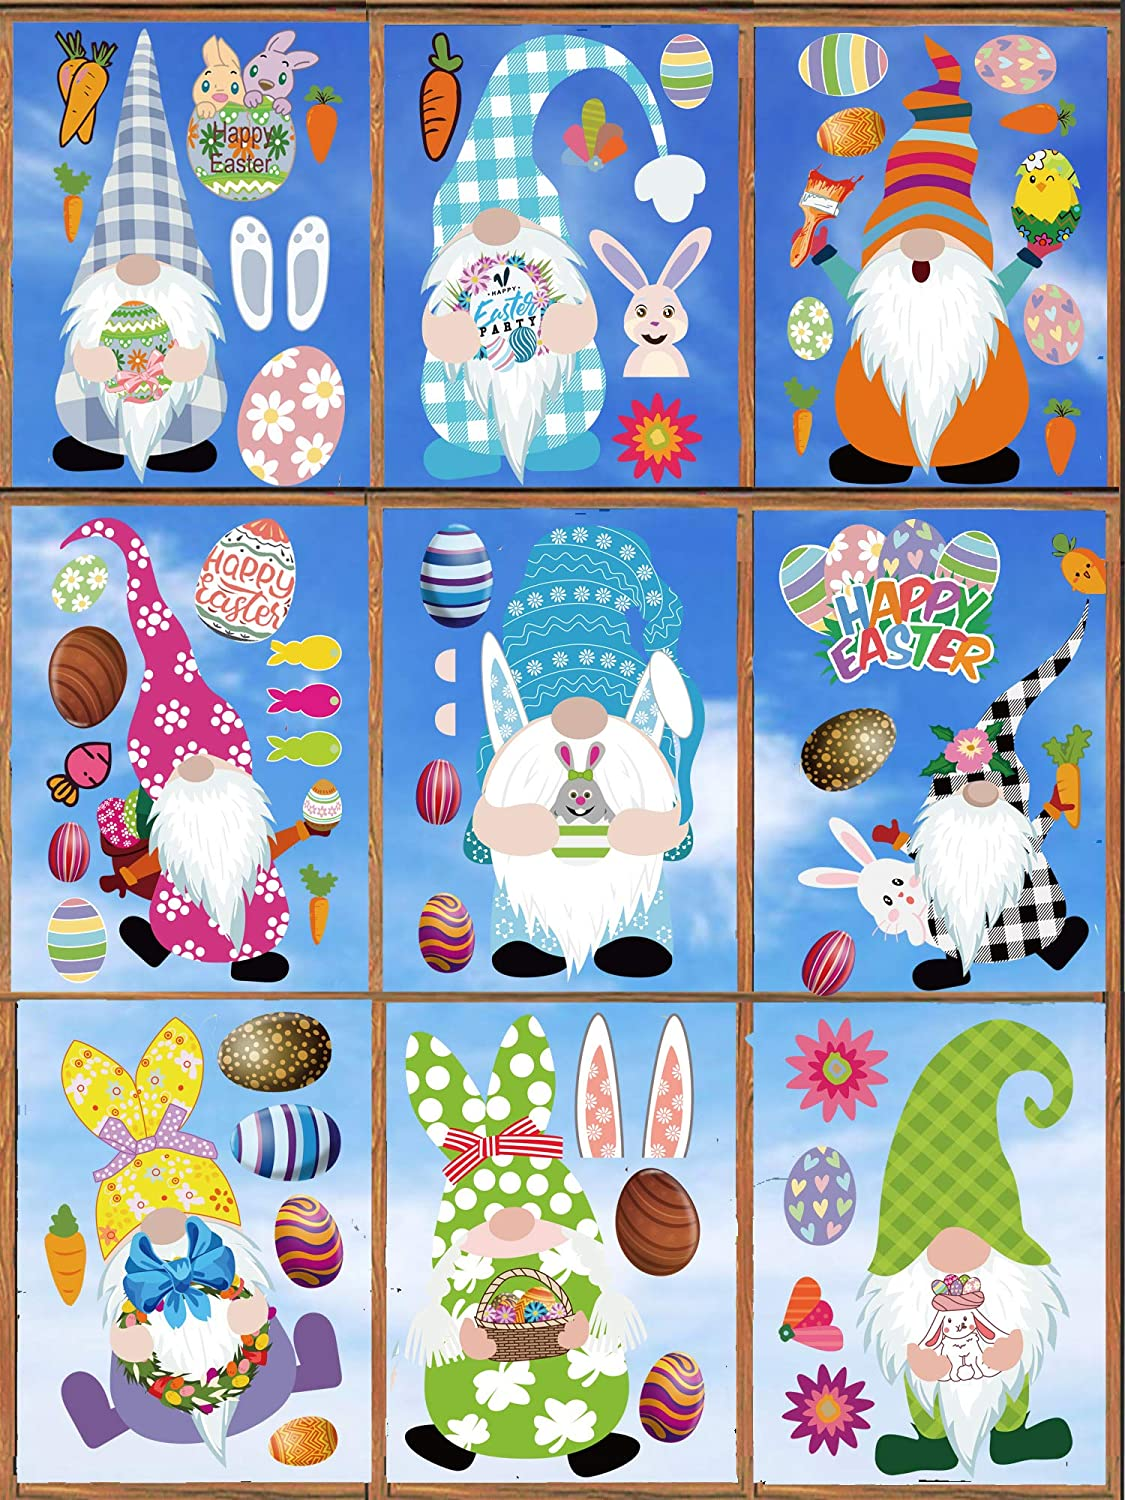 9 Sheets Easter Window Clings Gnome Bunny Decorations Egg Rabbit Max 73% OFF Our shop OFFers the best service